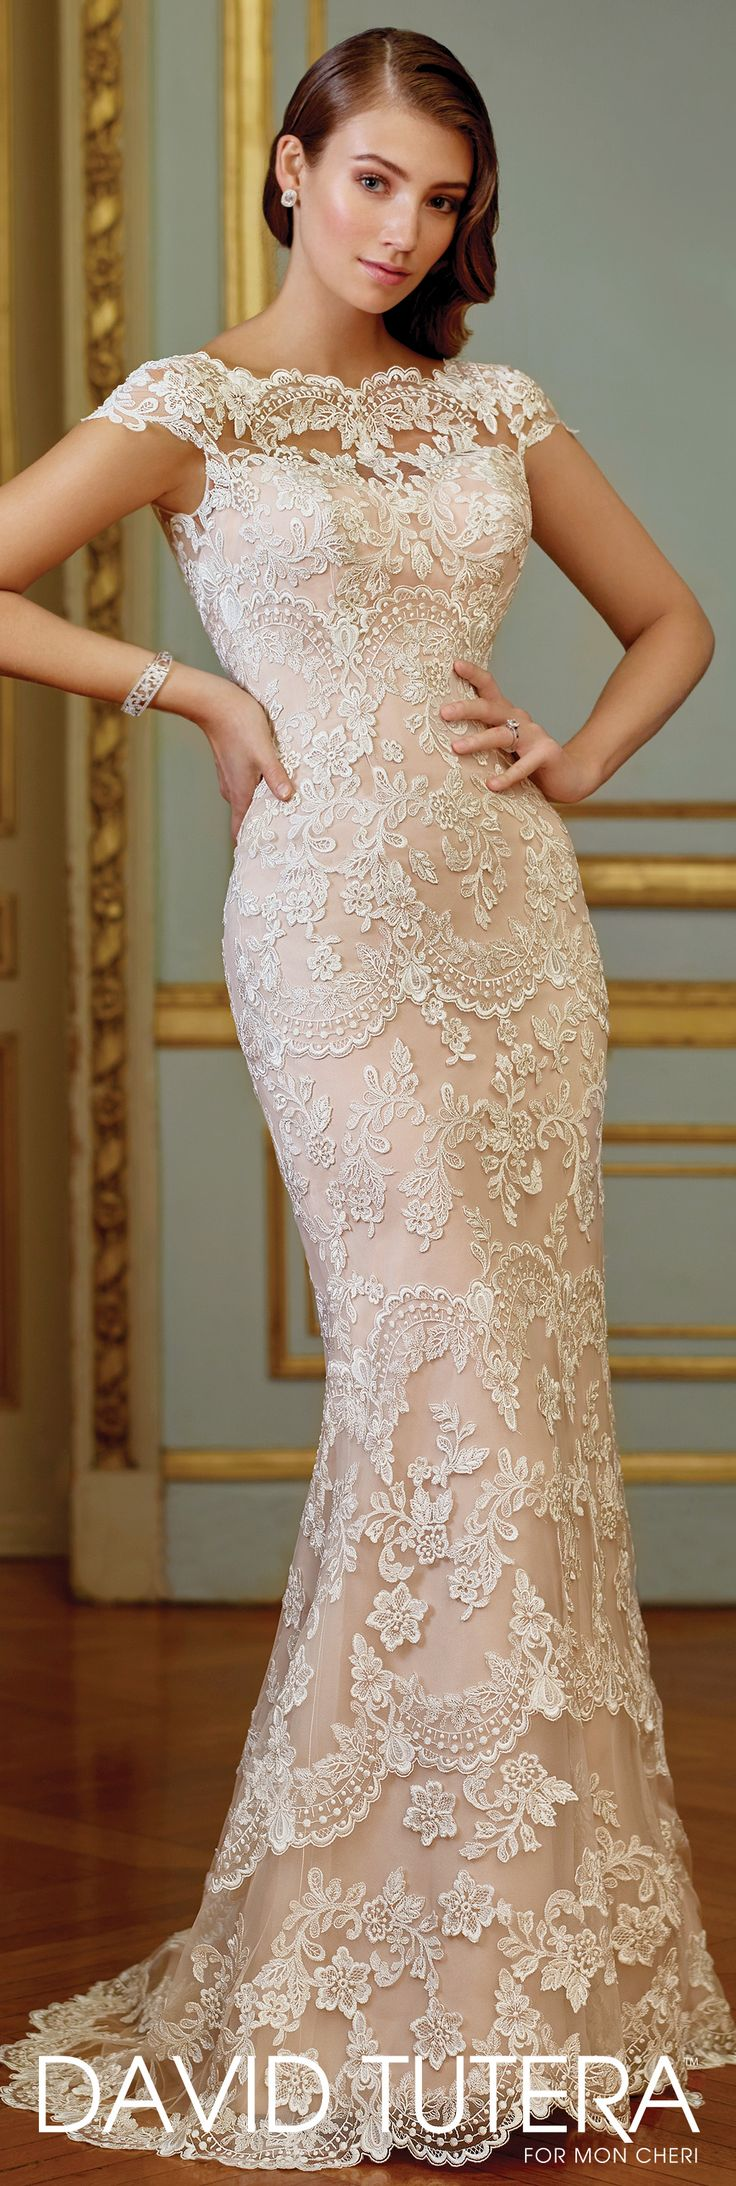 149 best images about say yes to the dress on pinterest for Fitted lace wedding dress